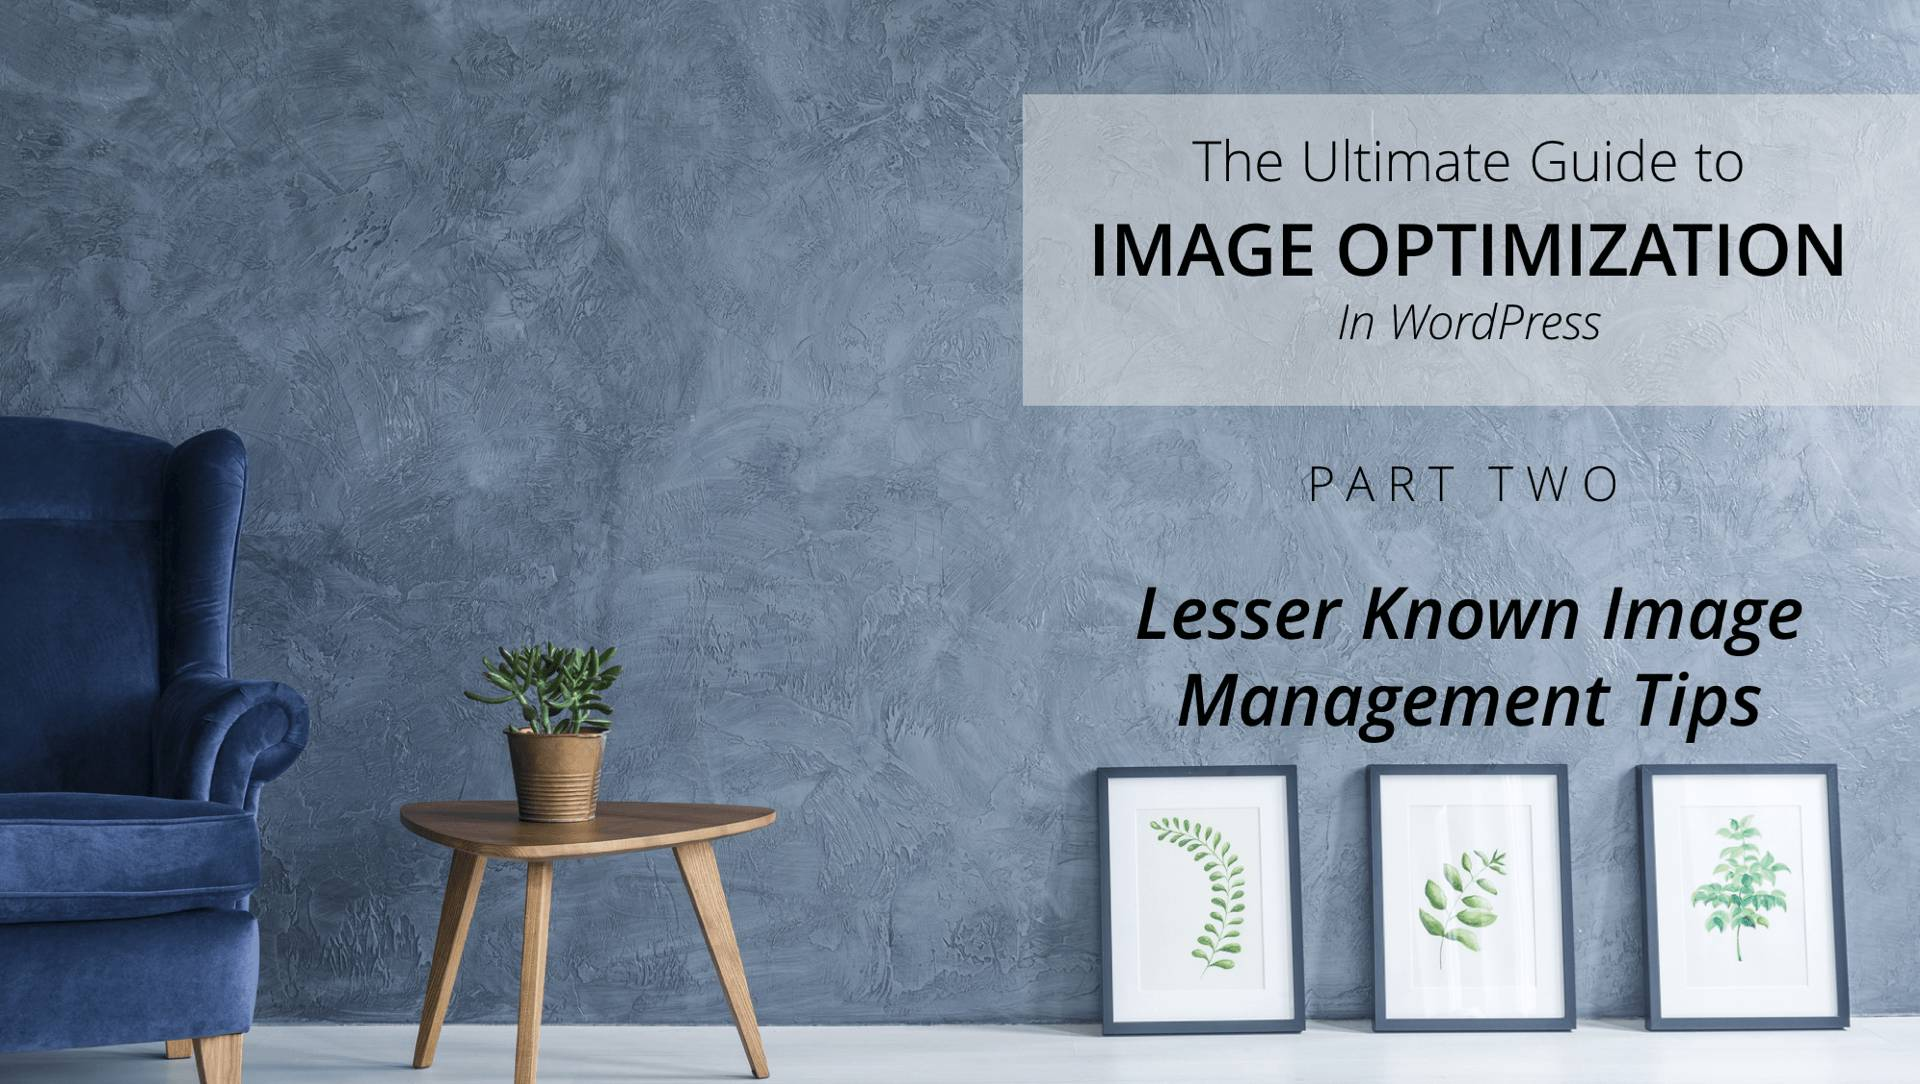 3 Lesser Known Image Management Tips in WordPress